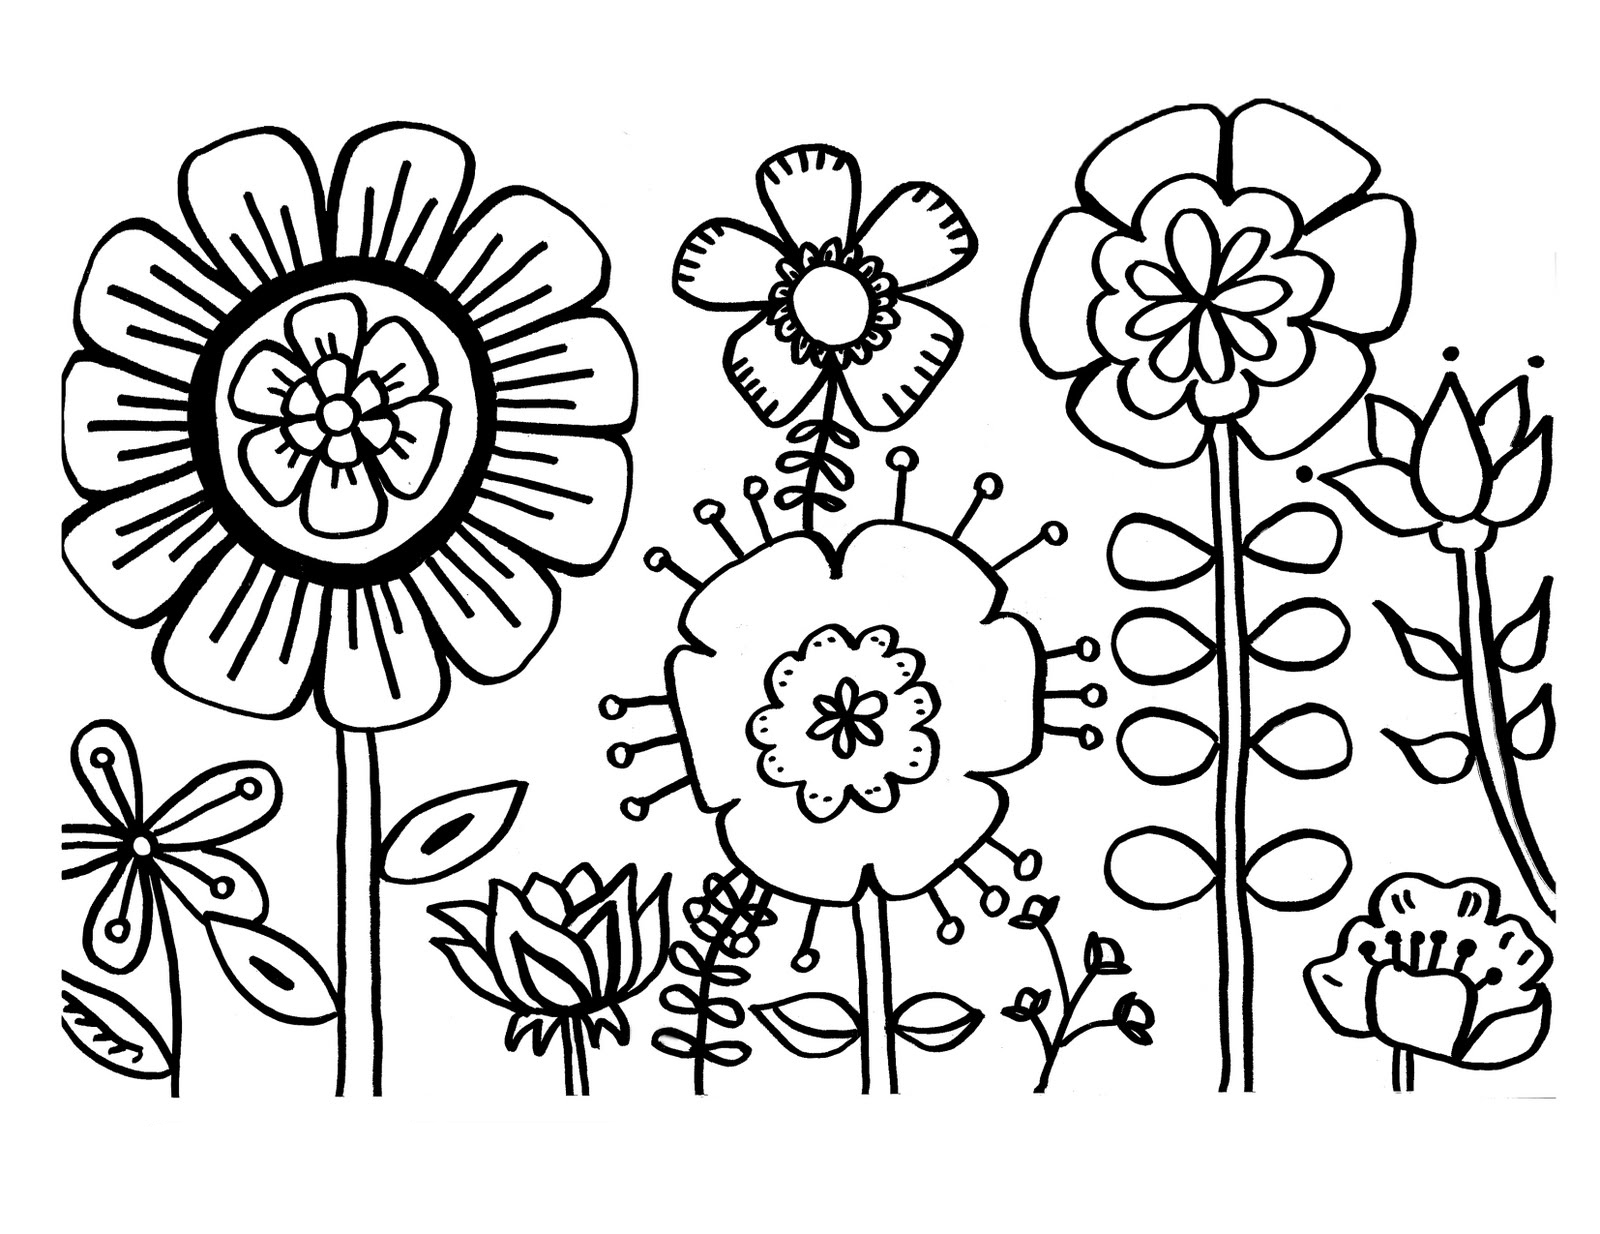 coloring pages flowers printable free printable flower coloring pages for kids best flowers coloring printable pages